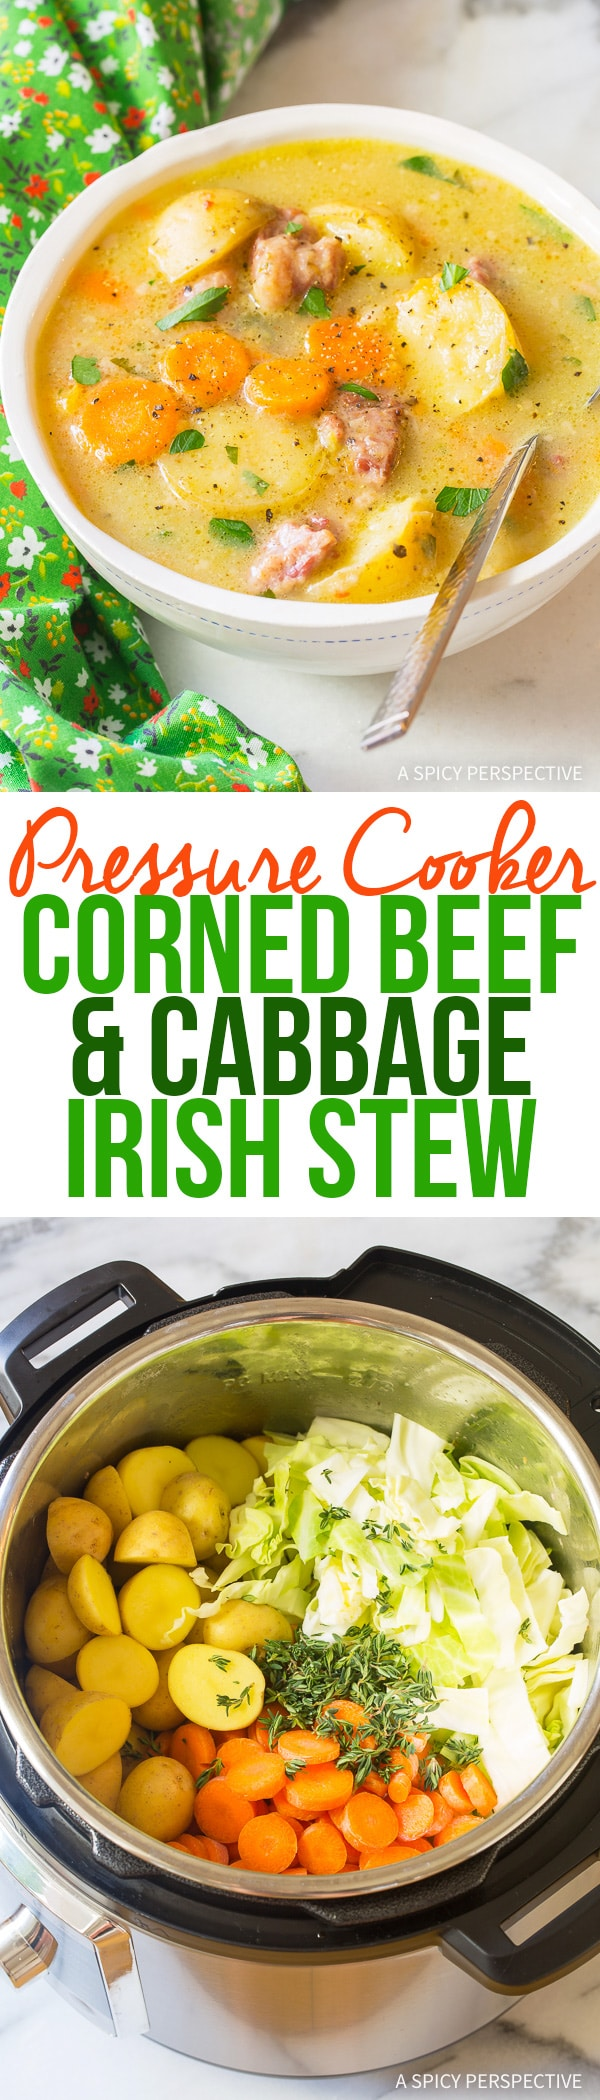 Easy Pressure Cooker Corned Beef Cabbage Irish Stew Recipe (Instant Pot for Saint Patrick's Day!)